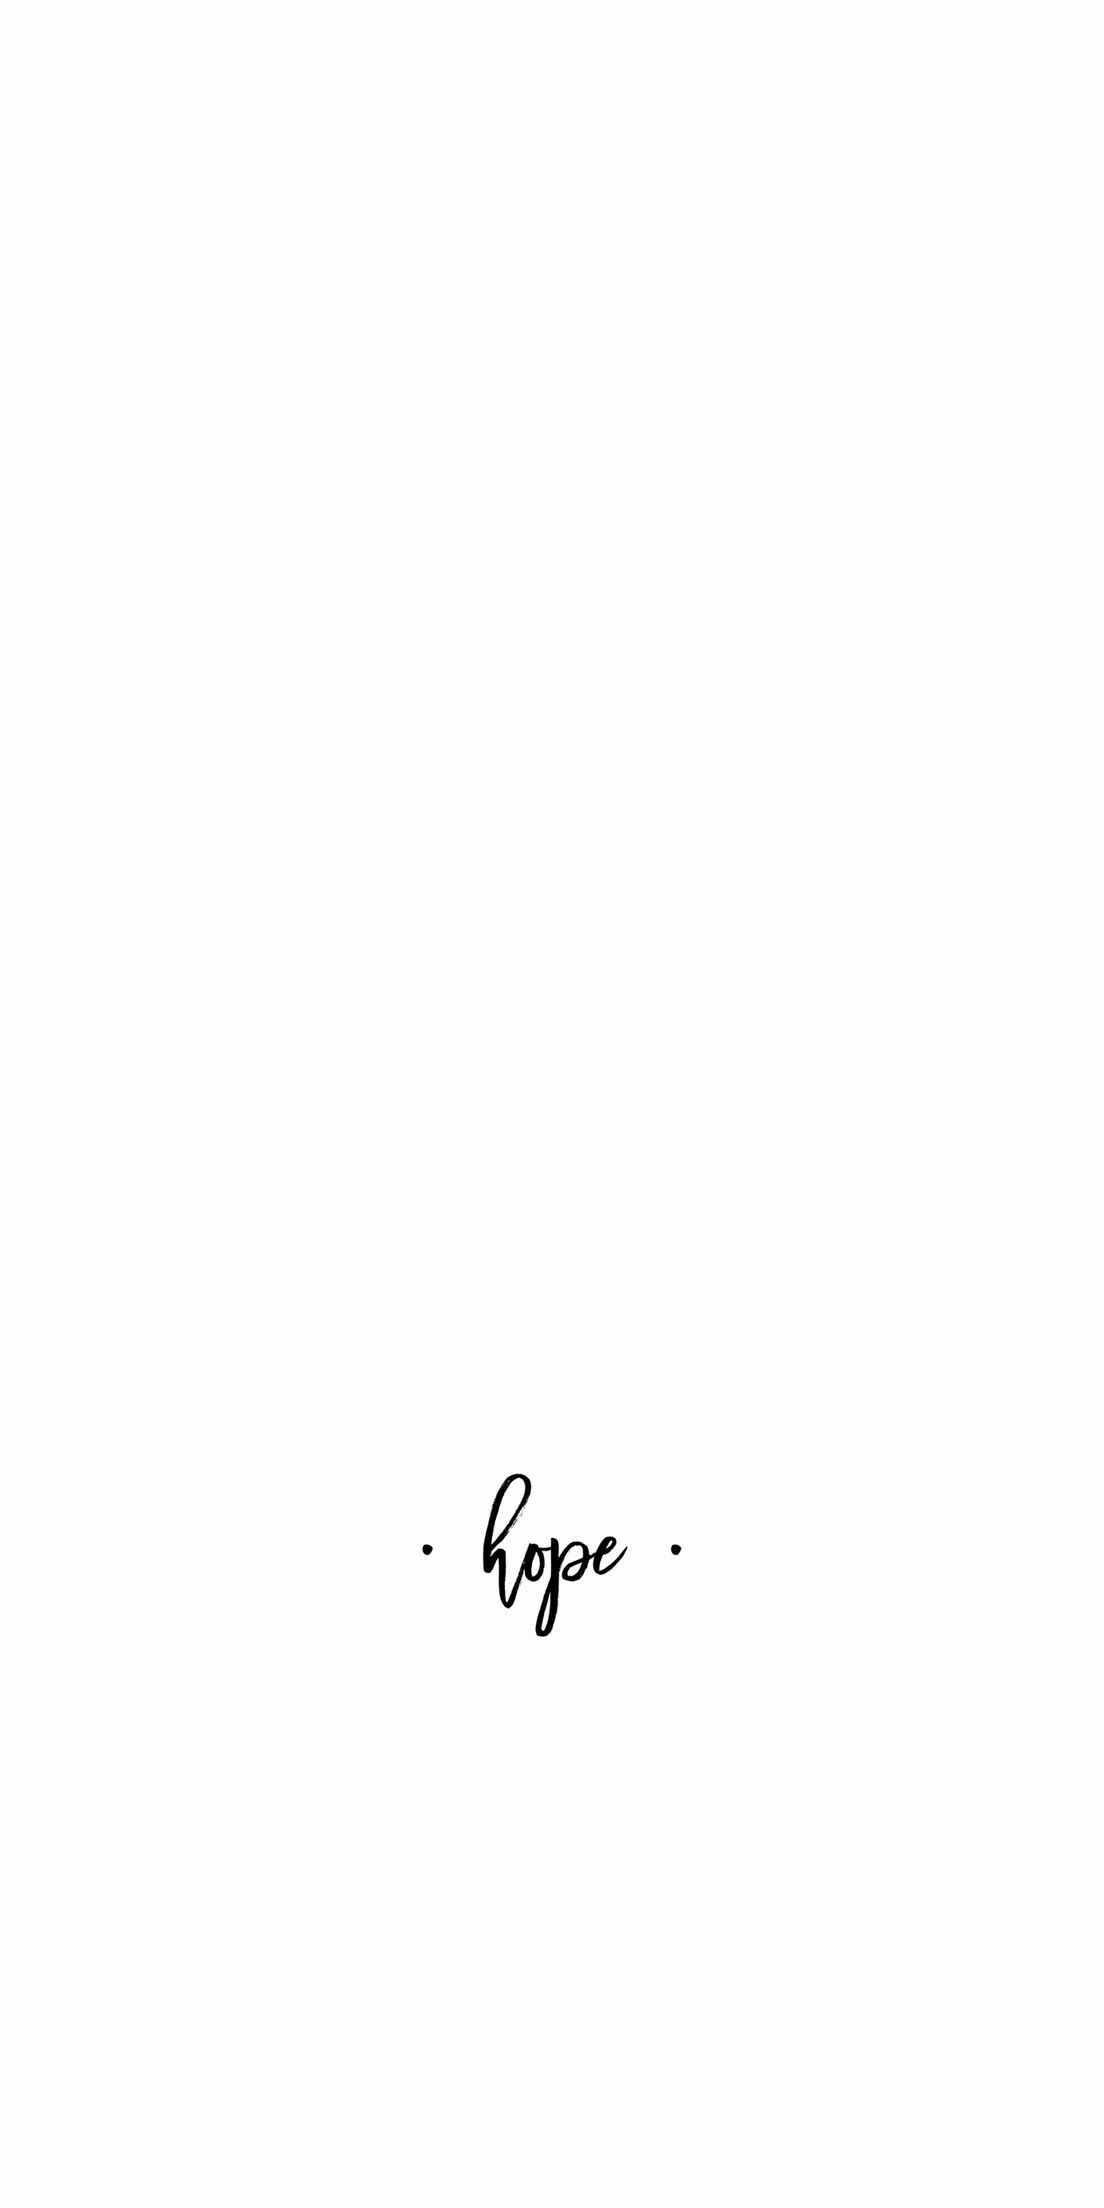 Esperanza Wallpaper quotes, Iphone background, Iphone